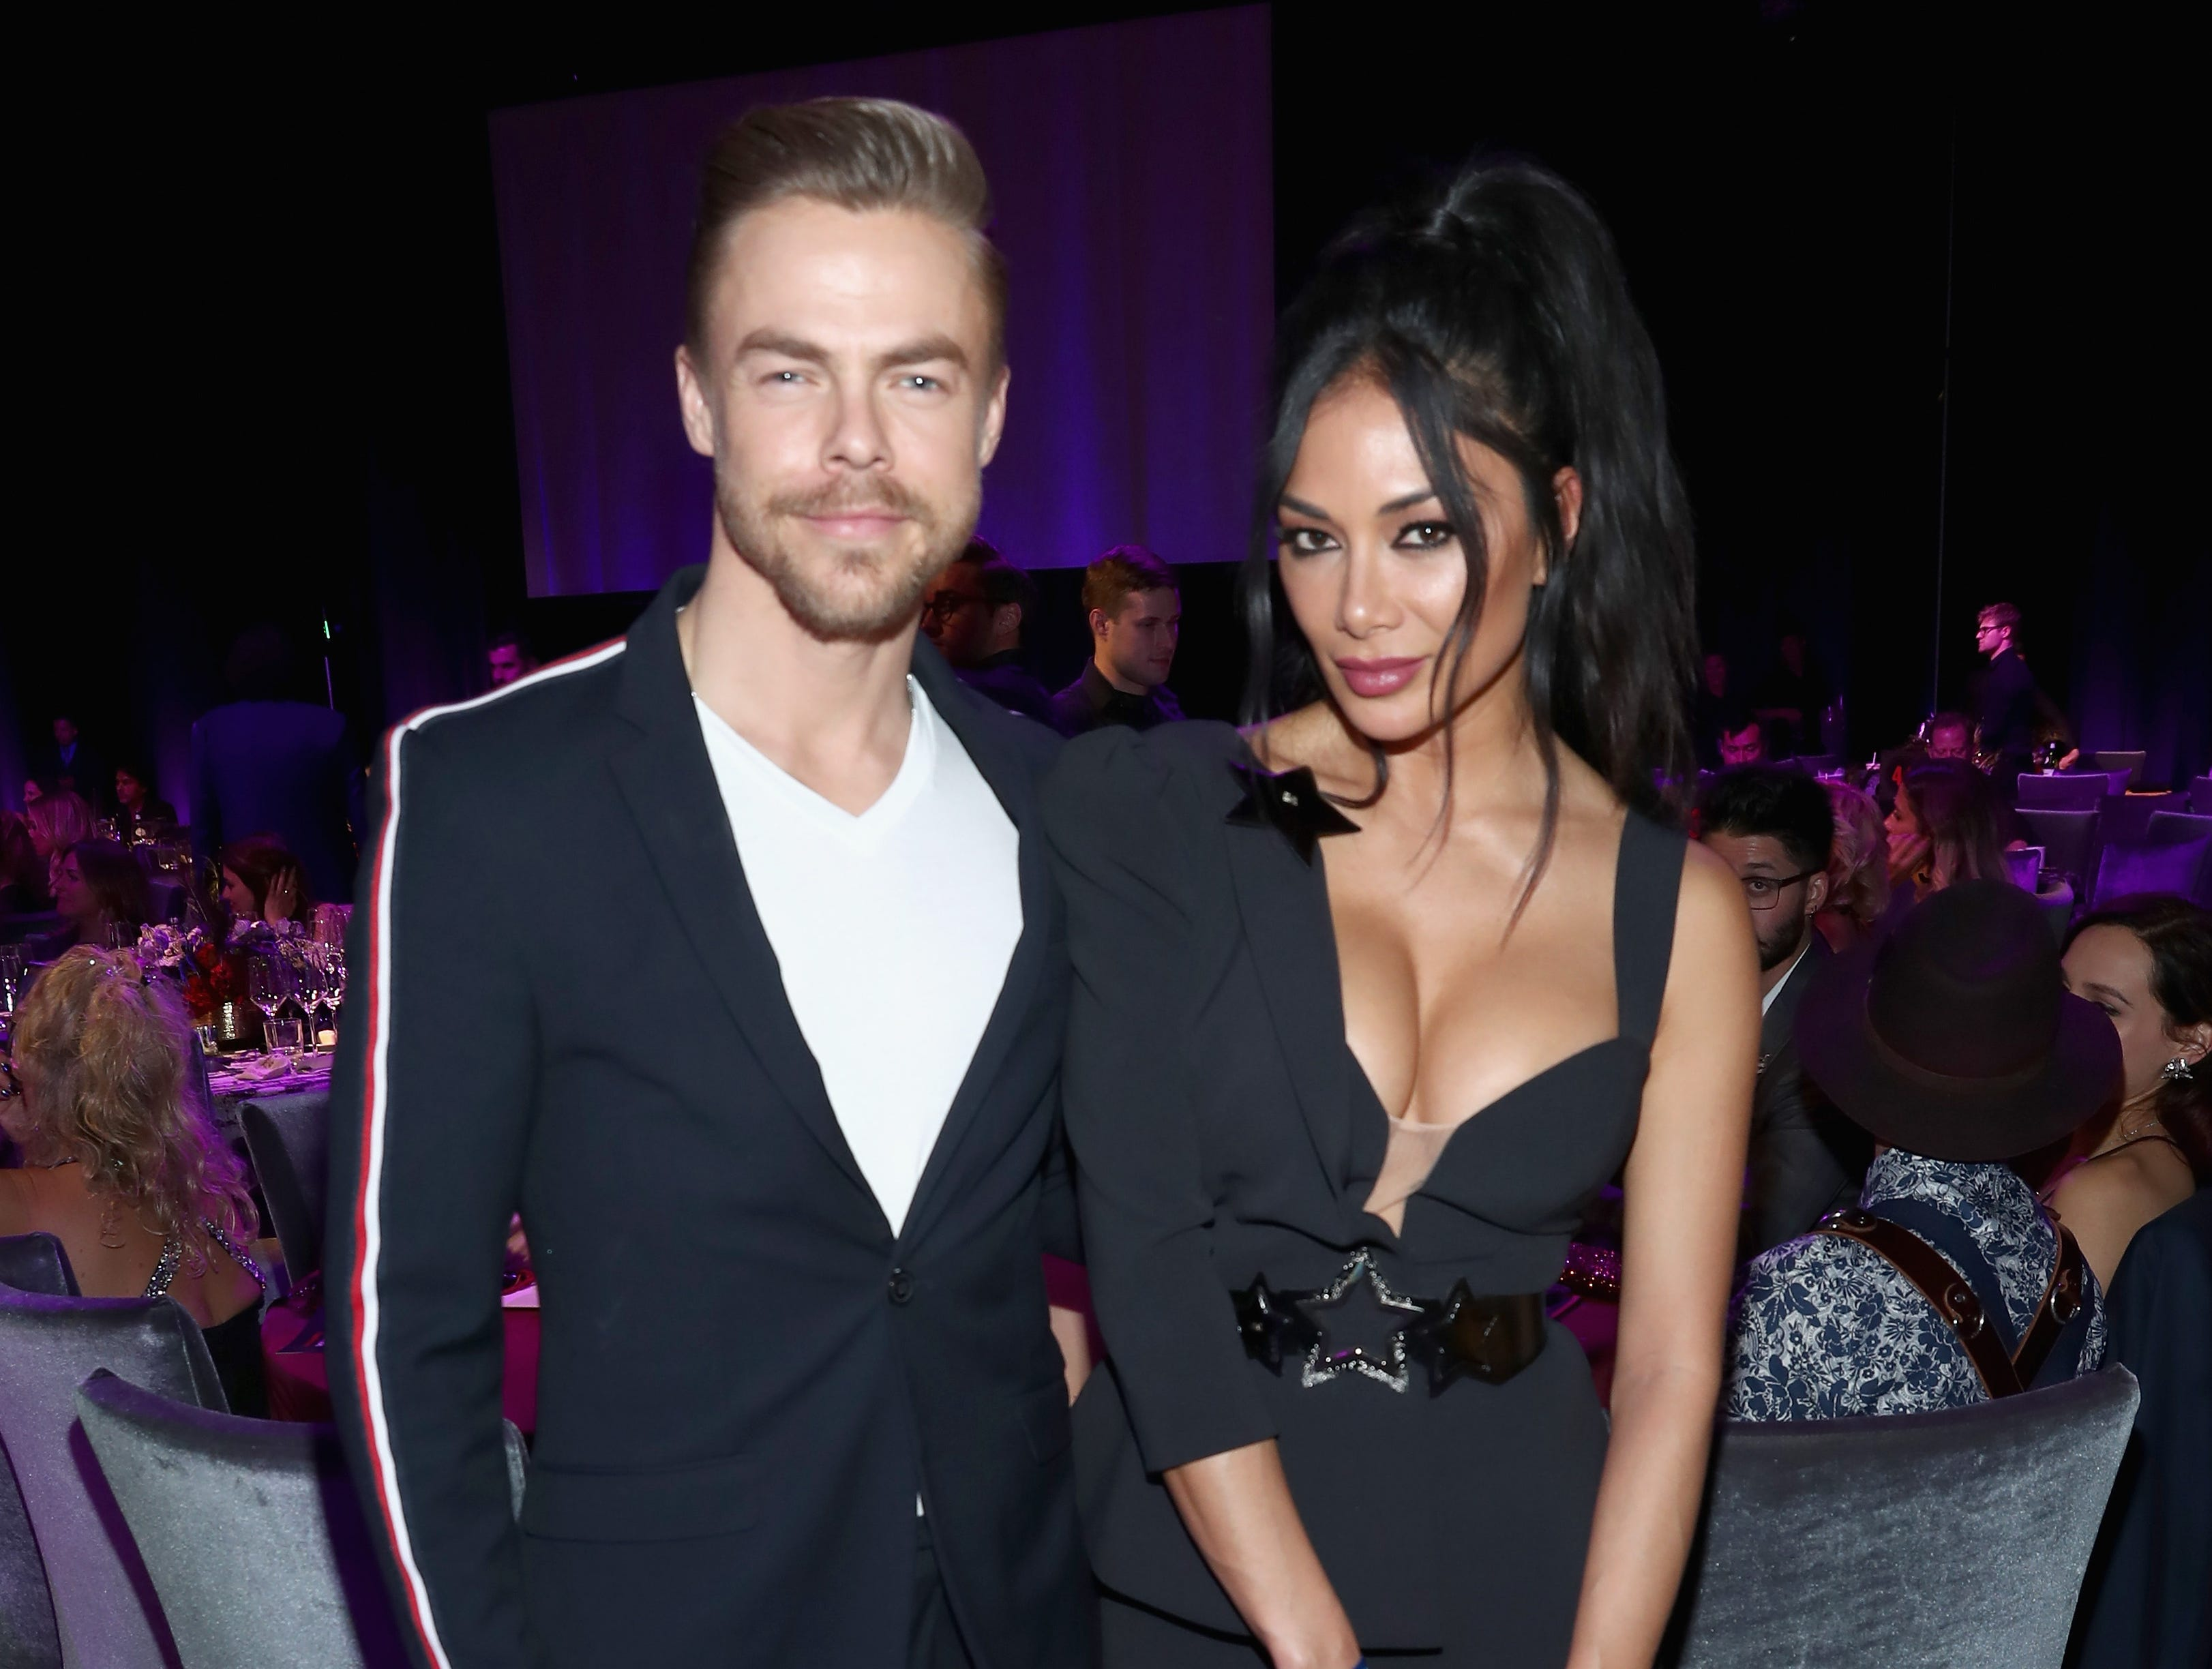 LOS ANGELES, CA - FEBRUARY 10:  Derek Hough and Nicole Scherzinger attend Steven Tyler?s Second Annual GRAMMY Awards Viewing Party to benefit Janie?s Fund presented by Live Nation at Raleigh Studios on February 10, 2019 in Los Angeles, California. at Raleigh Studios on February 10, 2019 in Los Angeles, California.  (Photo by Rich Polk/Getty Images for Janie's Fund) ORG XMIT: 775294826 ORIG FILE ID: 1097767126